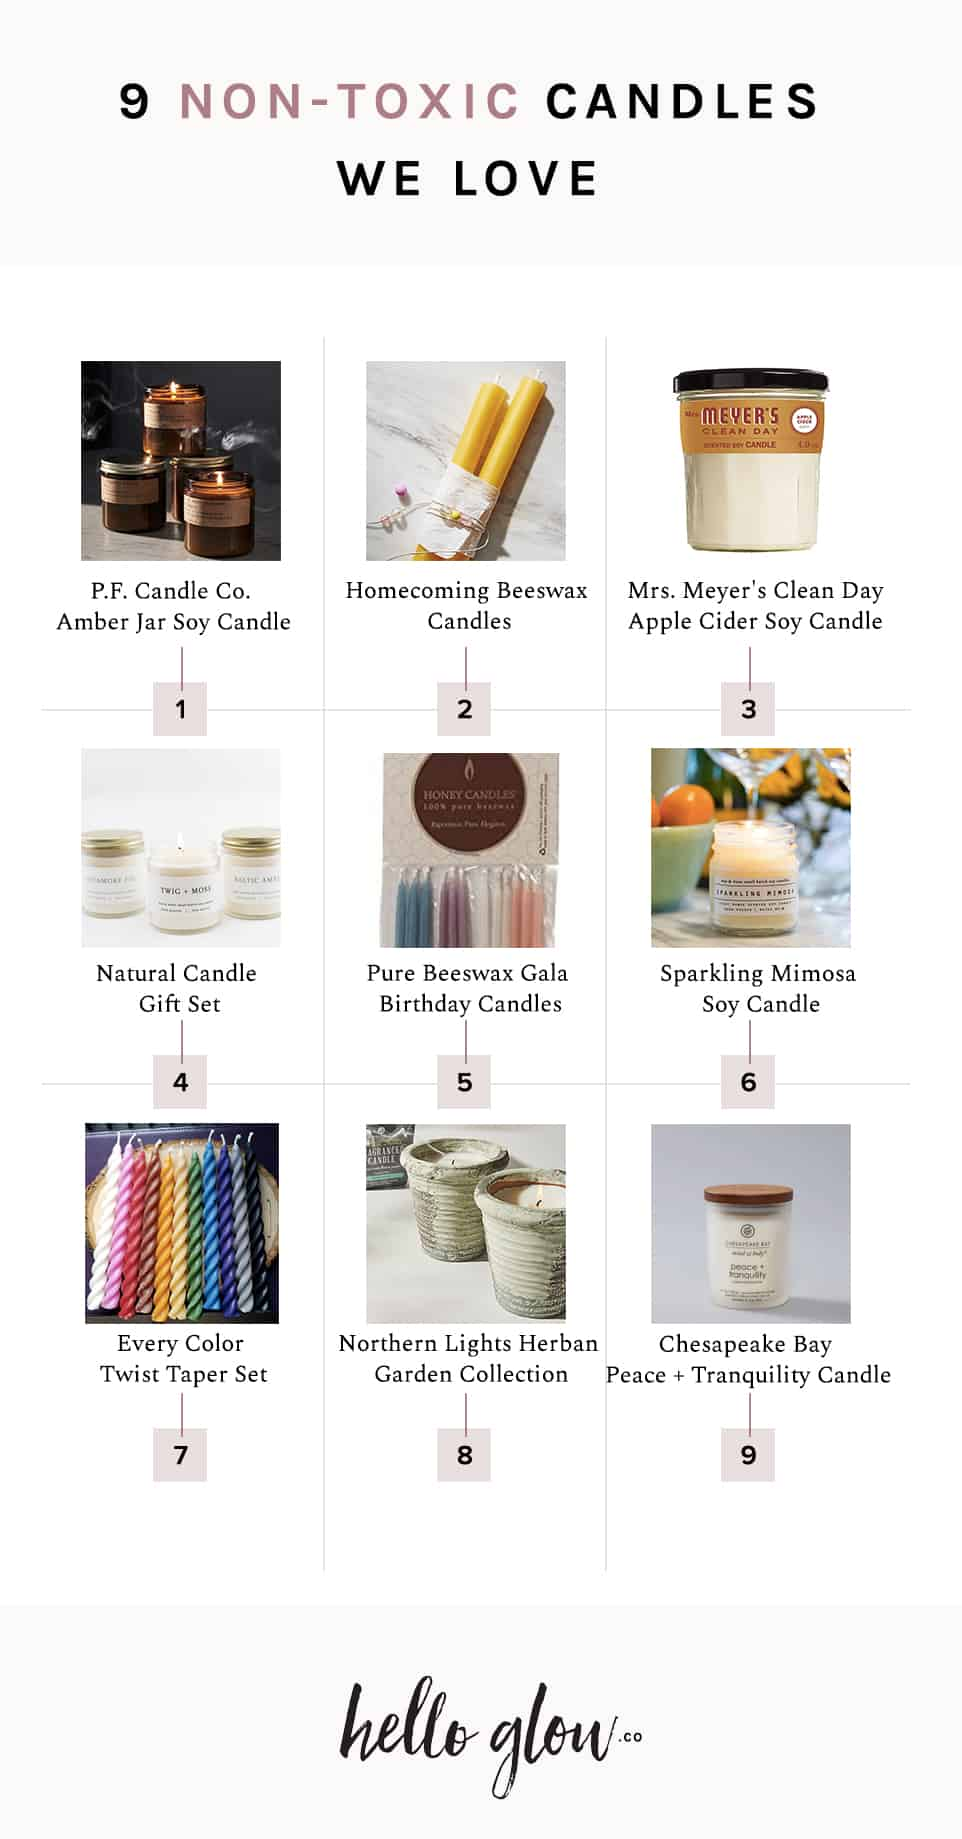 9 non-toxic candles we love - HelloGlow.co